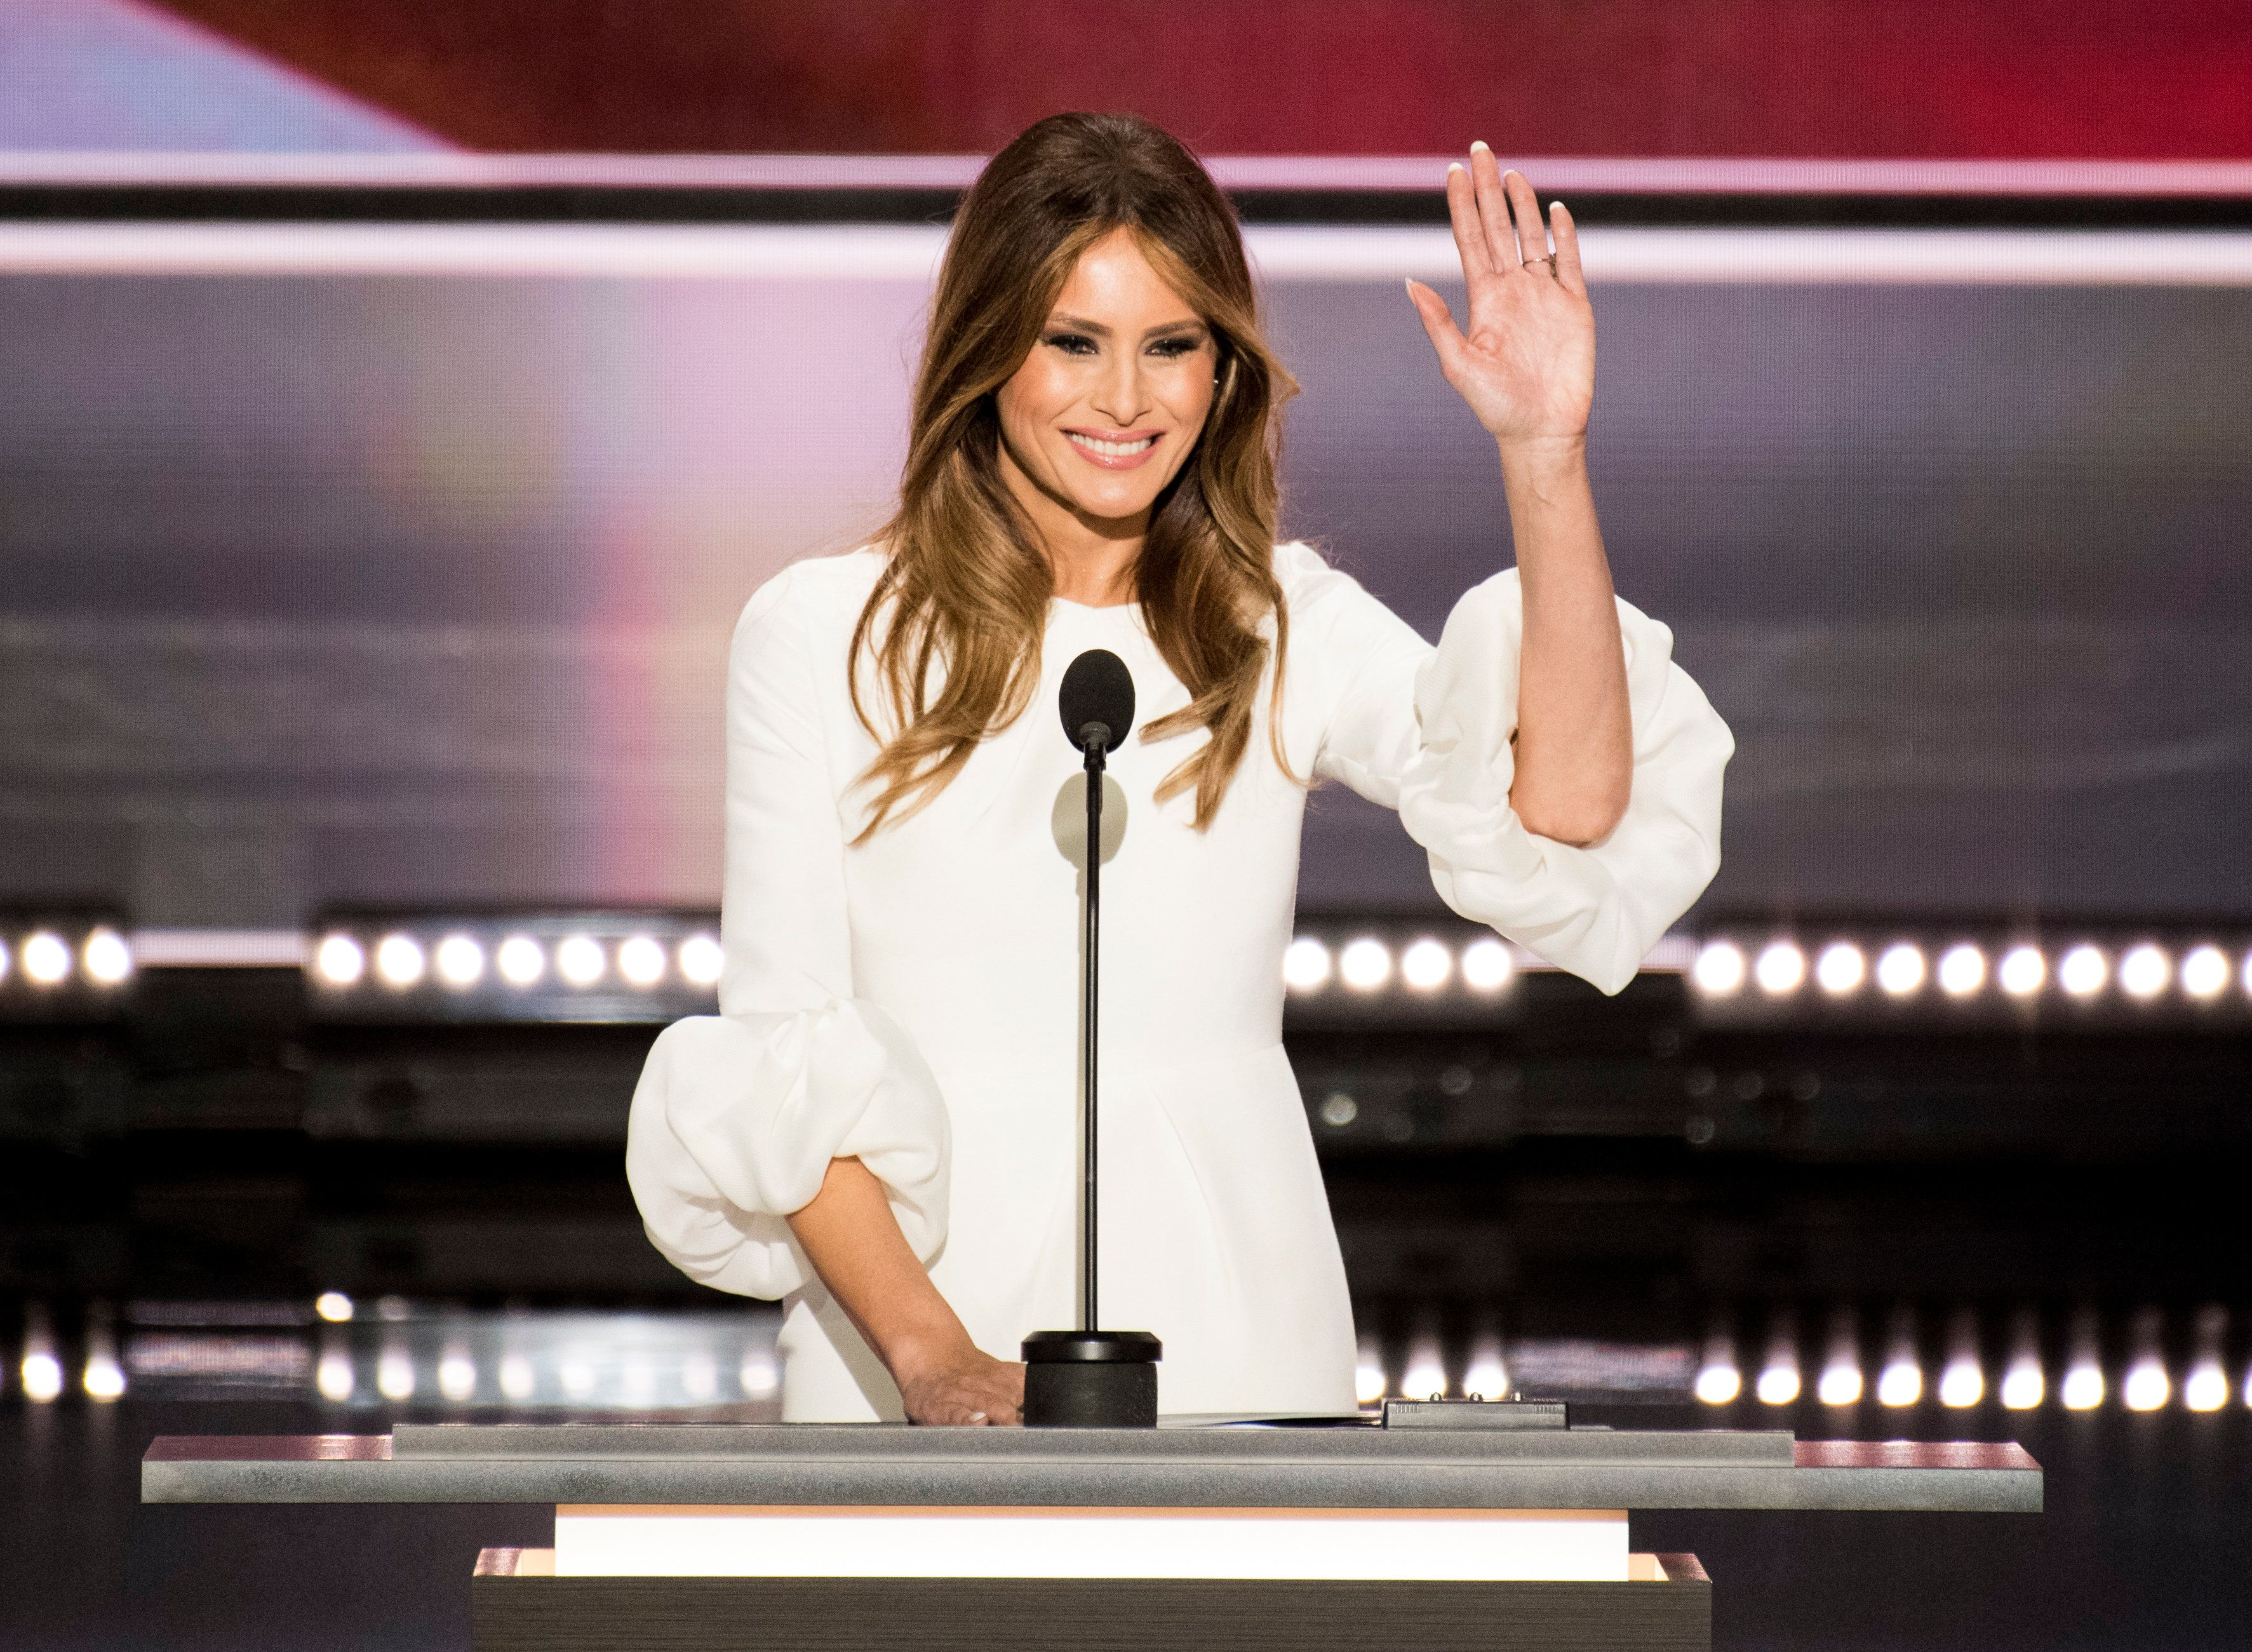 Melania Trump, wife of Republican presidentialnominee Donald Trump, says she came to the U.S. for the first time in 199